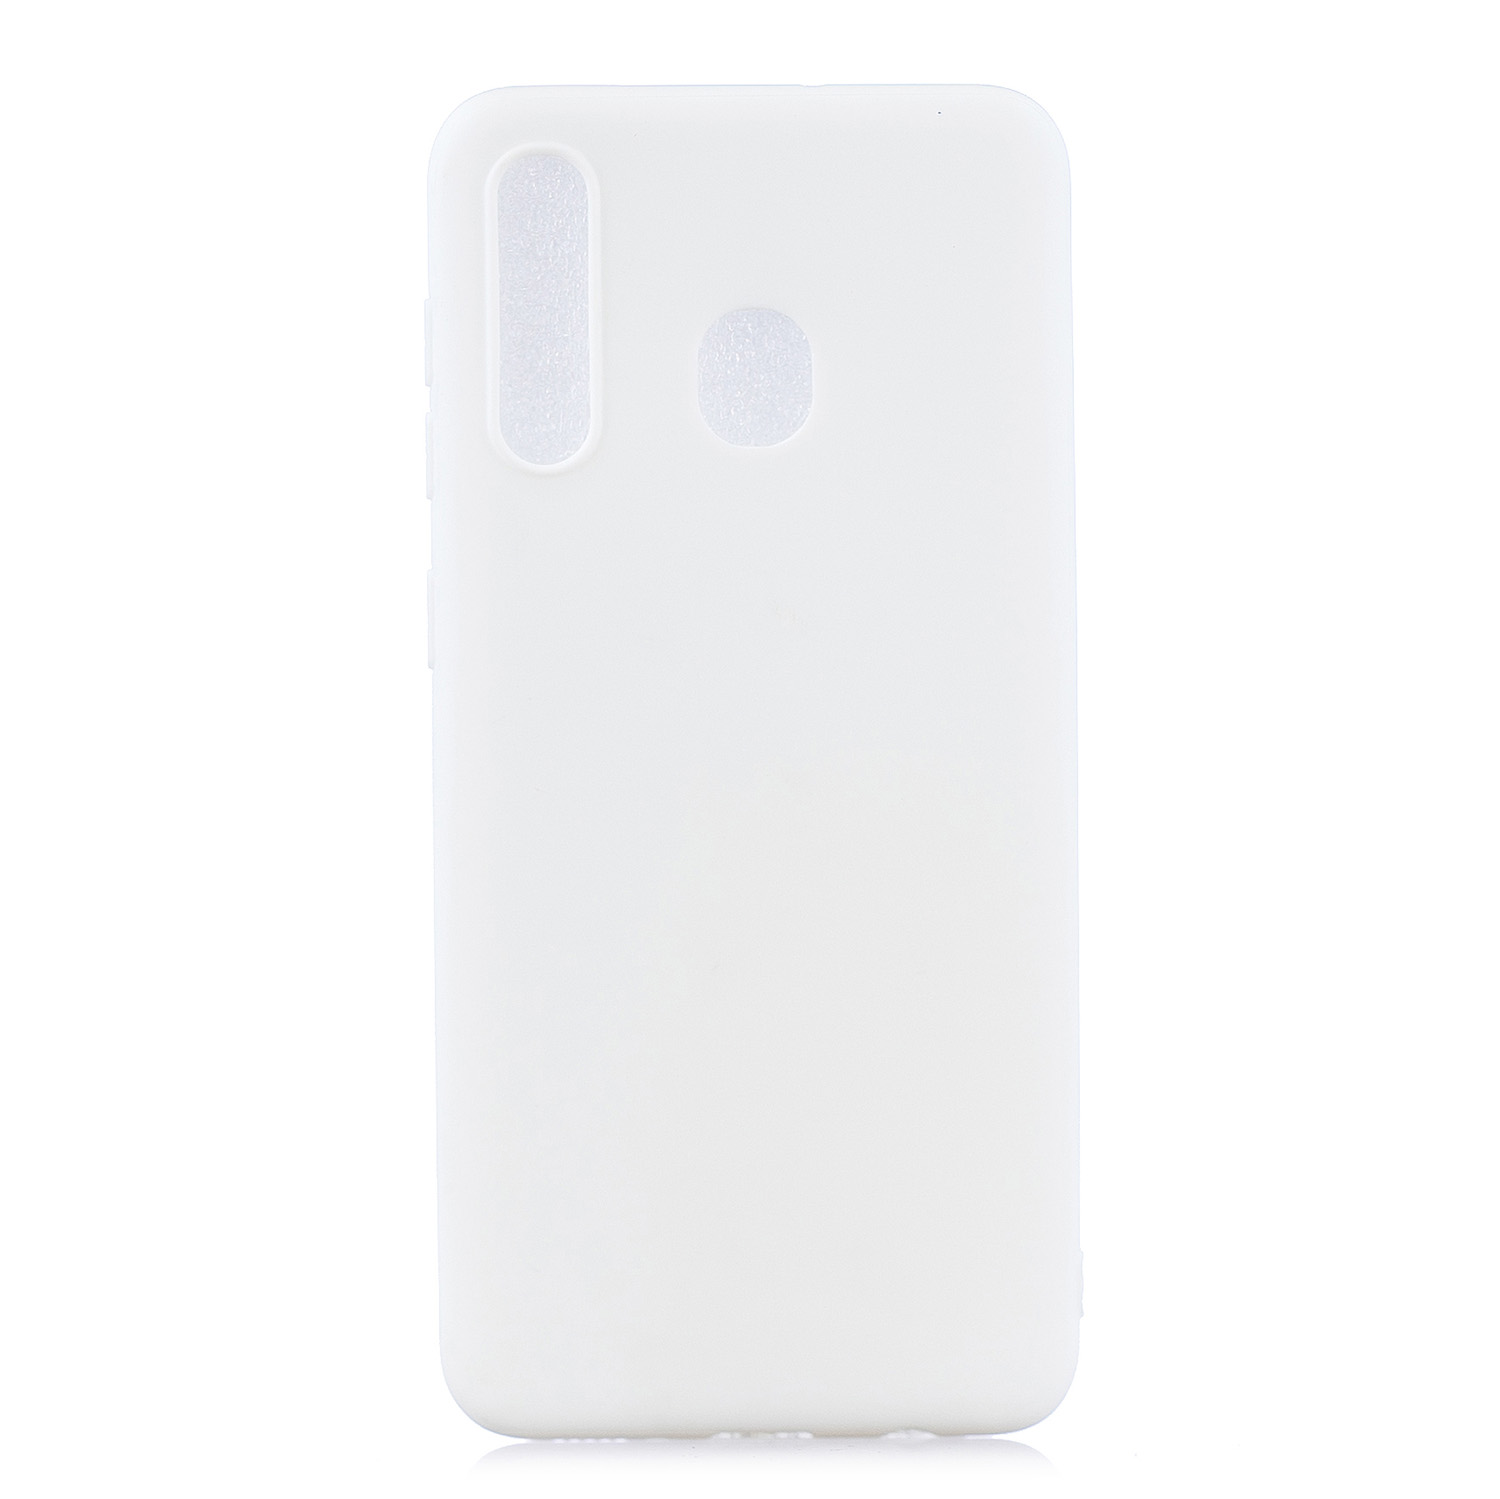 For HUAWEI Y9 2019 Lovely Candy Color Matte TPU Anti-scratch Non-slip Protective Cover Back Case white